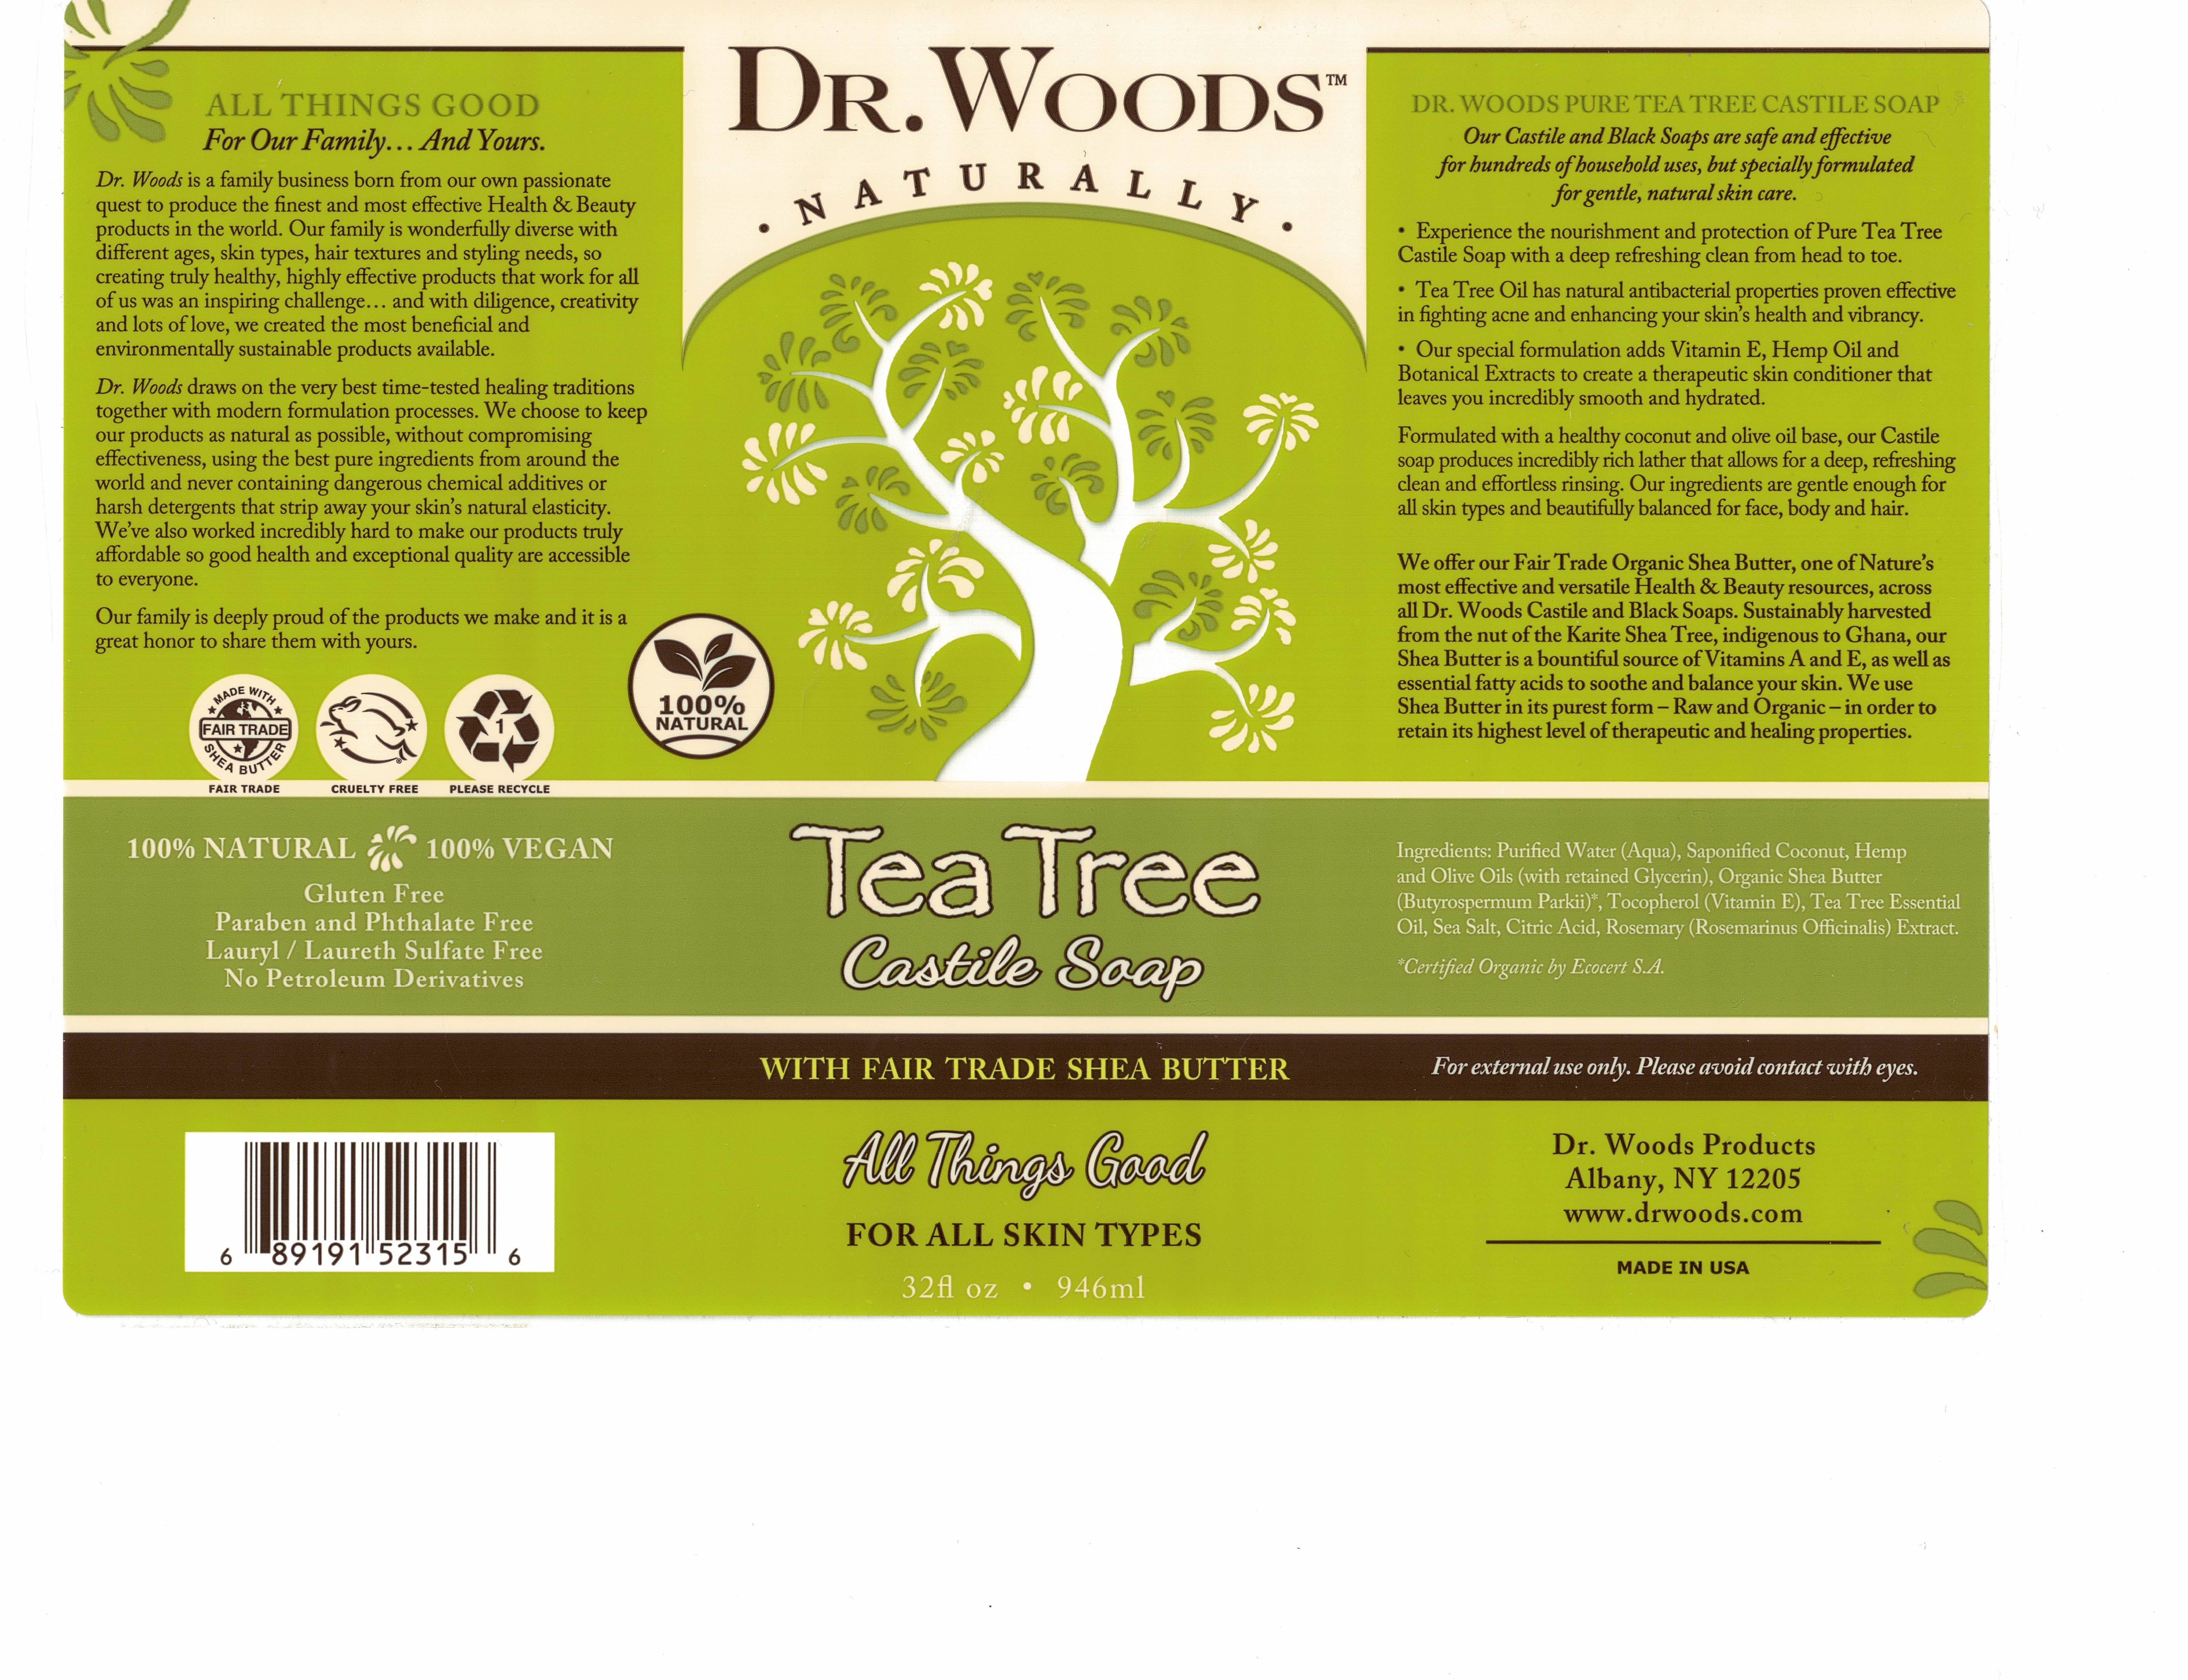 TEA TREE CASTILE SOAP WITH FAIR TRADE SHEA BUTTER FOR ALL